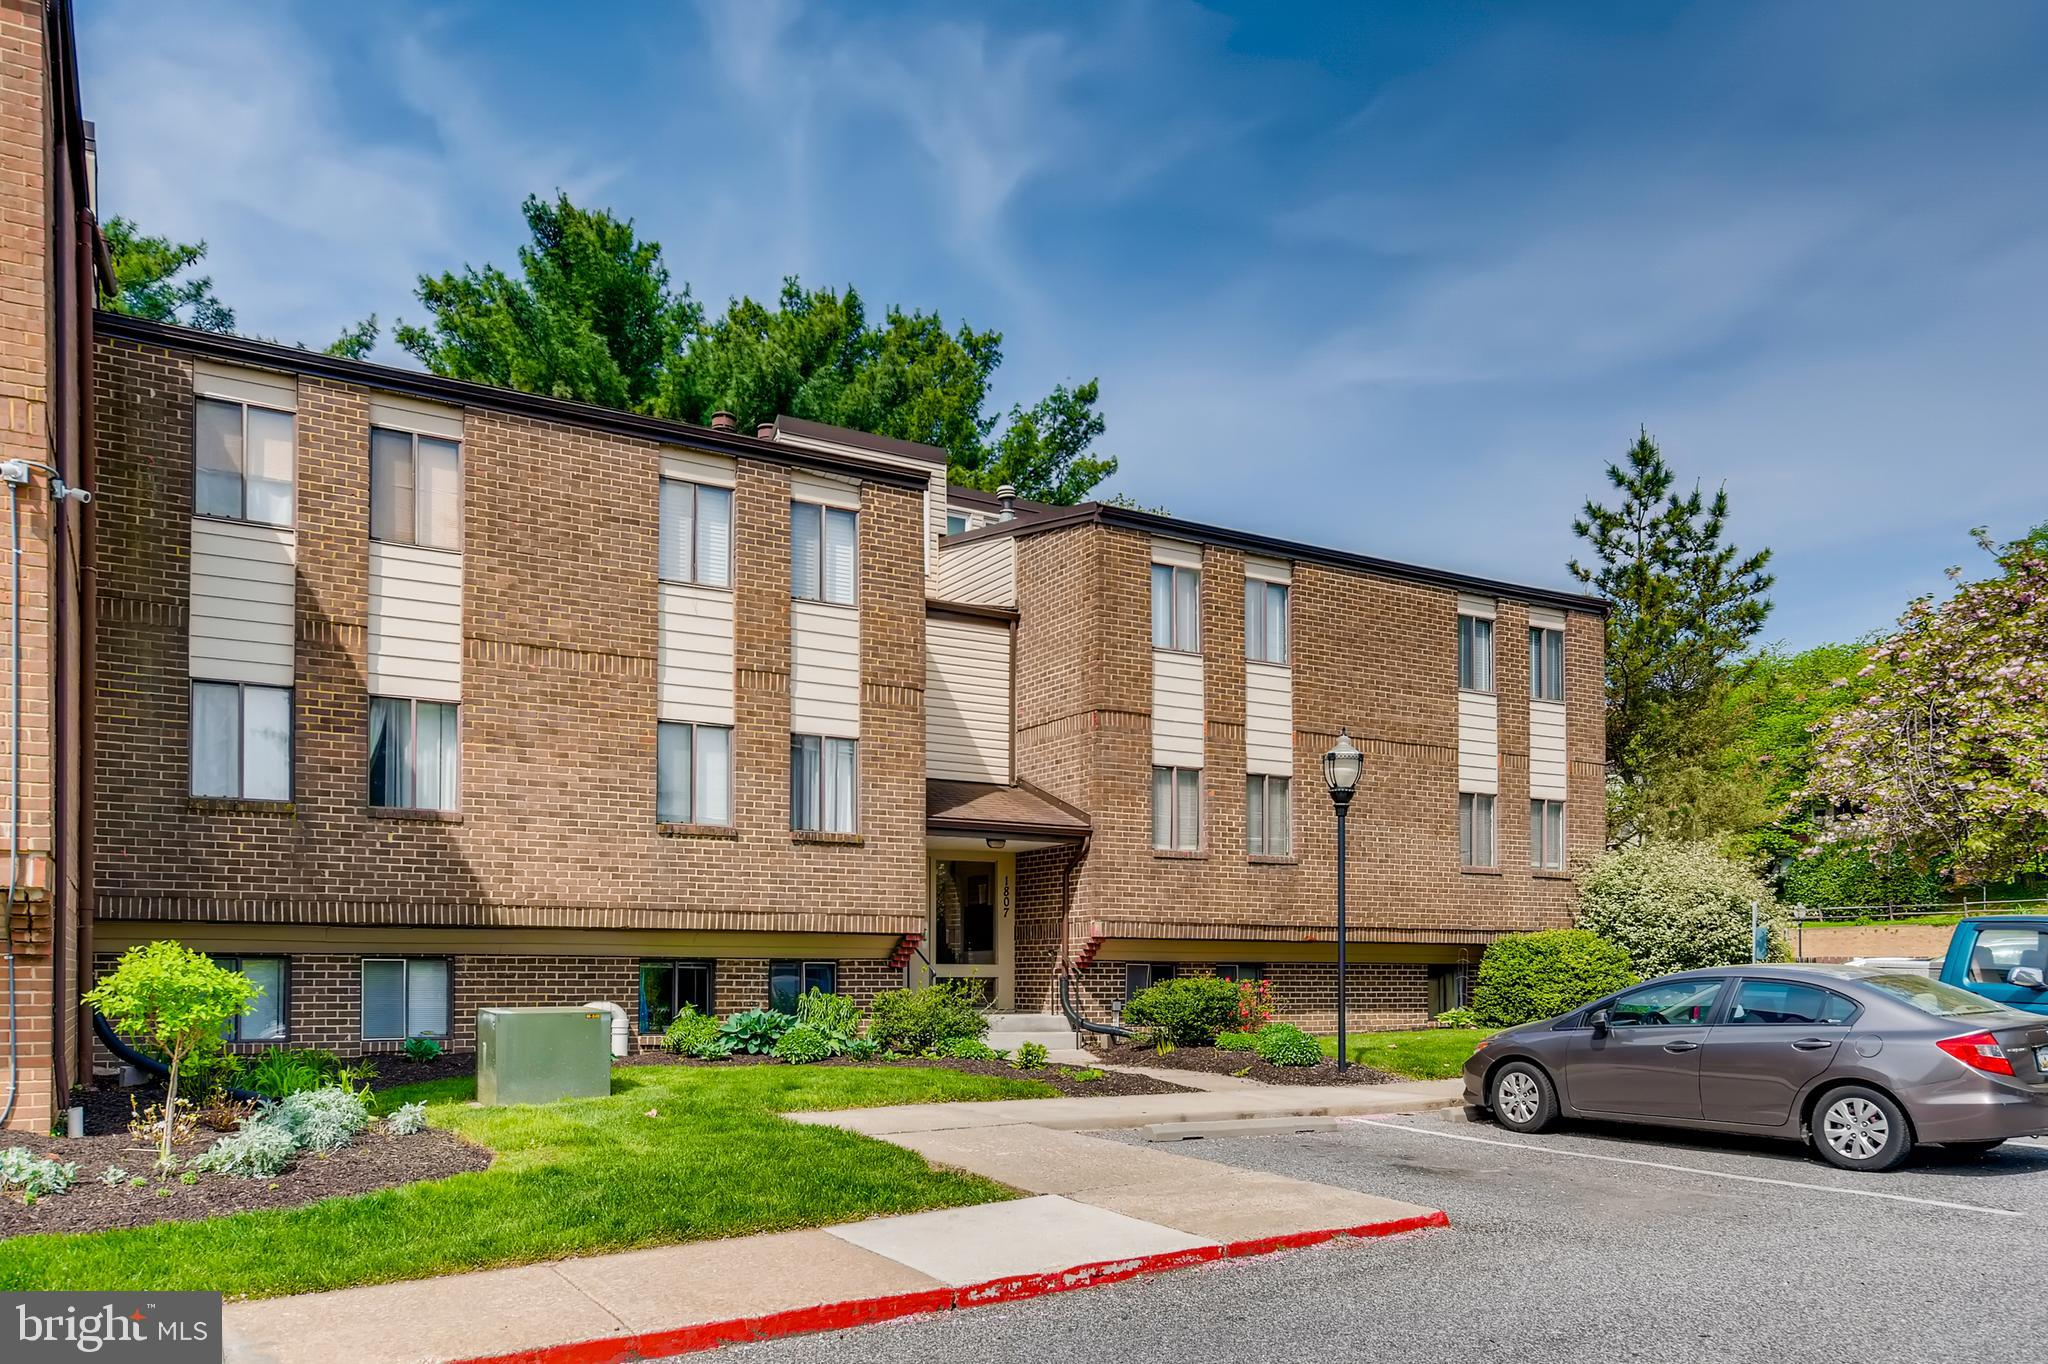 Bright, open, and spacious three bedroom condominium featuring  dramatic vaulted and beamed ceilings, stainless and granite kitchen, large balcony, ample closets, W/D hookup, and community pool and tennis. Rockland  Run is a community located in Baltimore County with easy access to 83/695, Quarry Lake, and 500 acre Lake Roland Park.